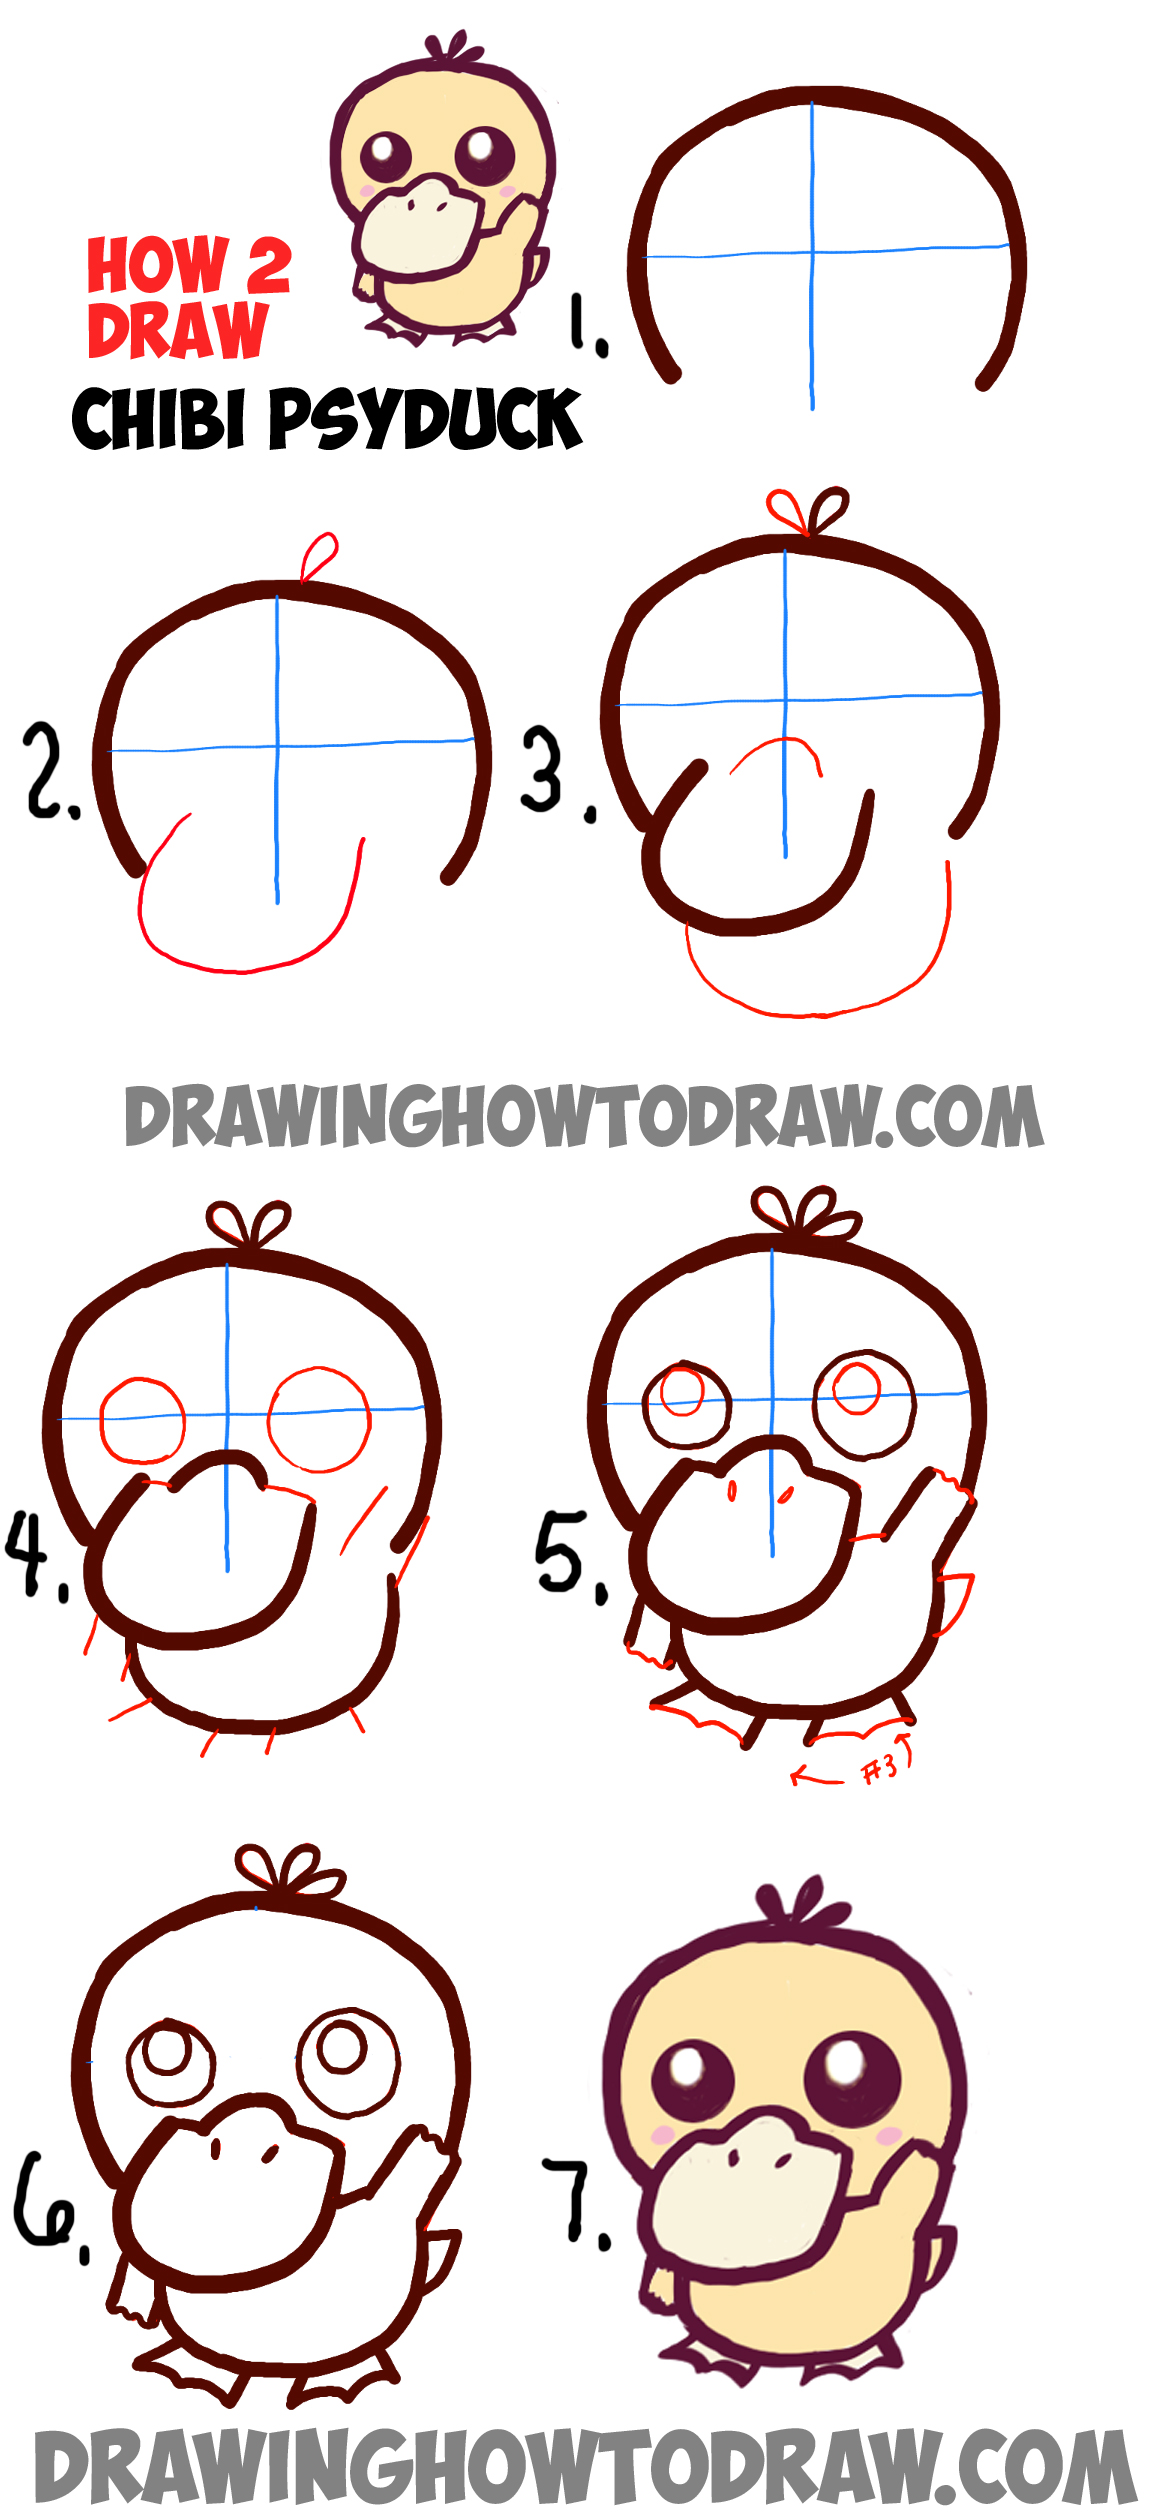 Learn How to Draw a Cute Baby Chibi Psyduck from Pokemon in Step by Step Drawing Tutorial